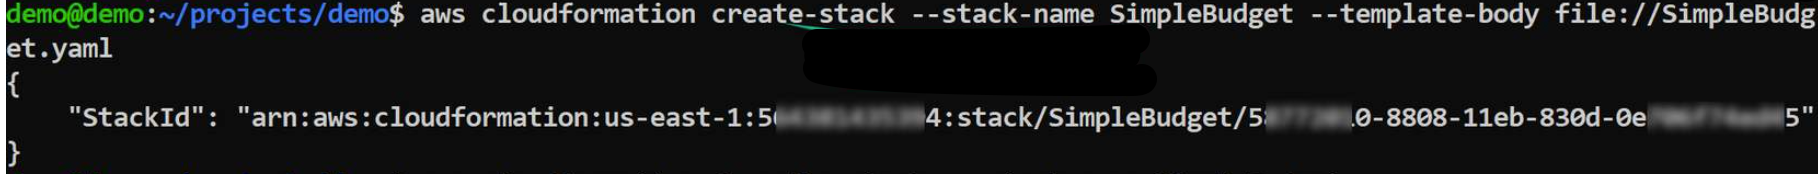 CloudFormation_CLI_create_stack